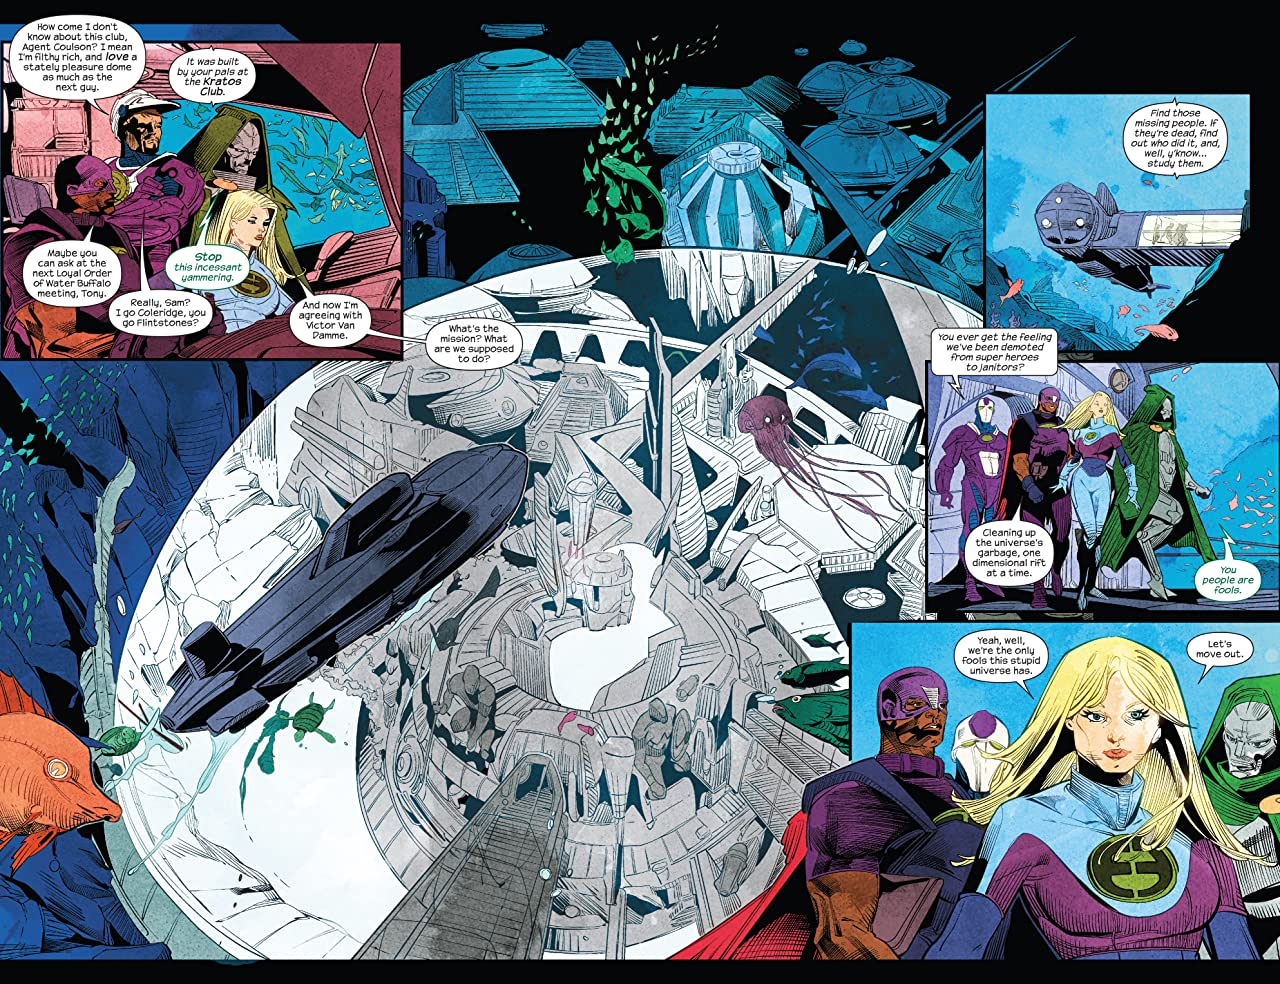 Ultimate FF (2014) #2